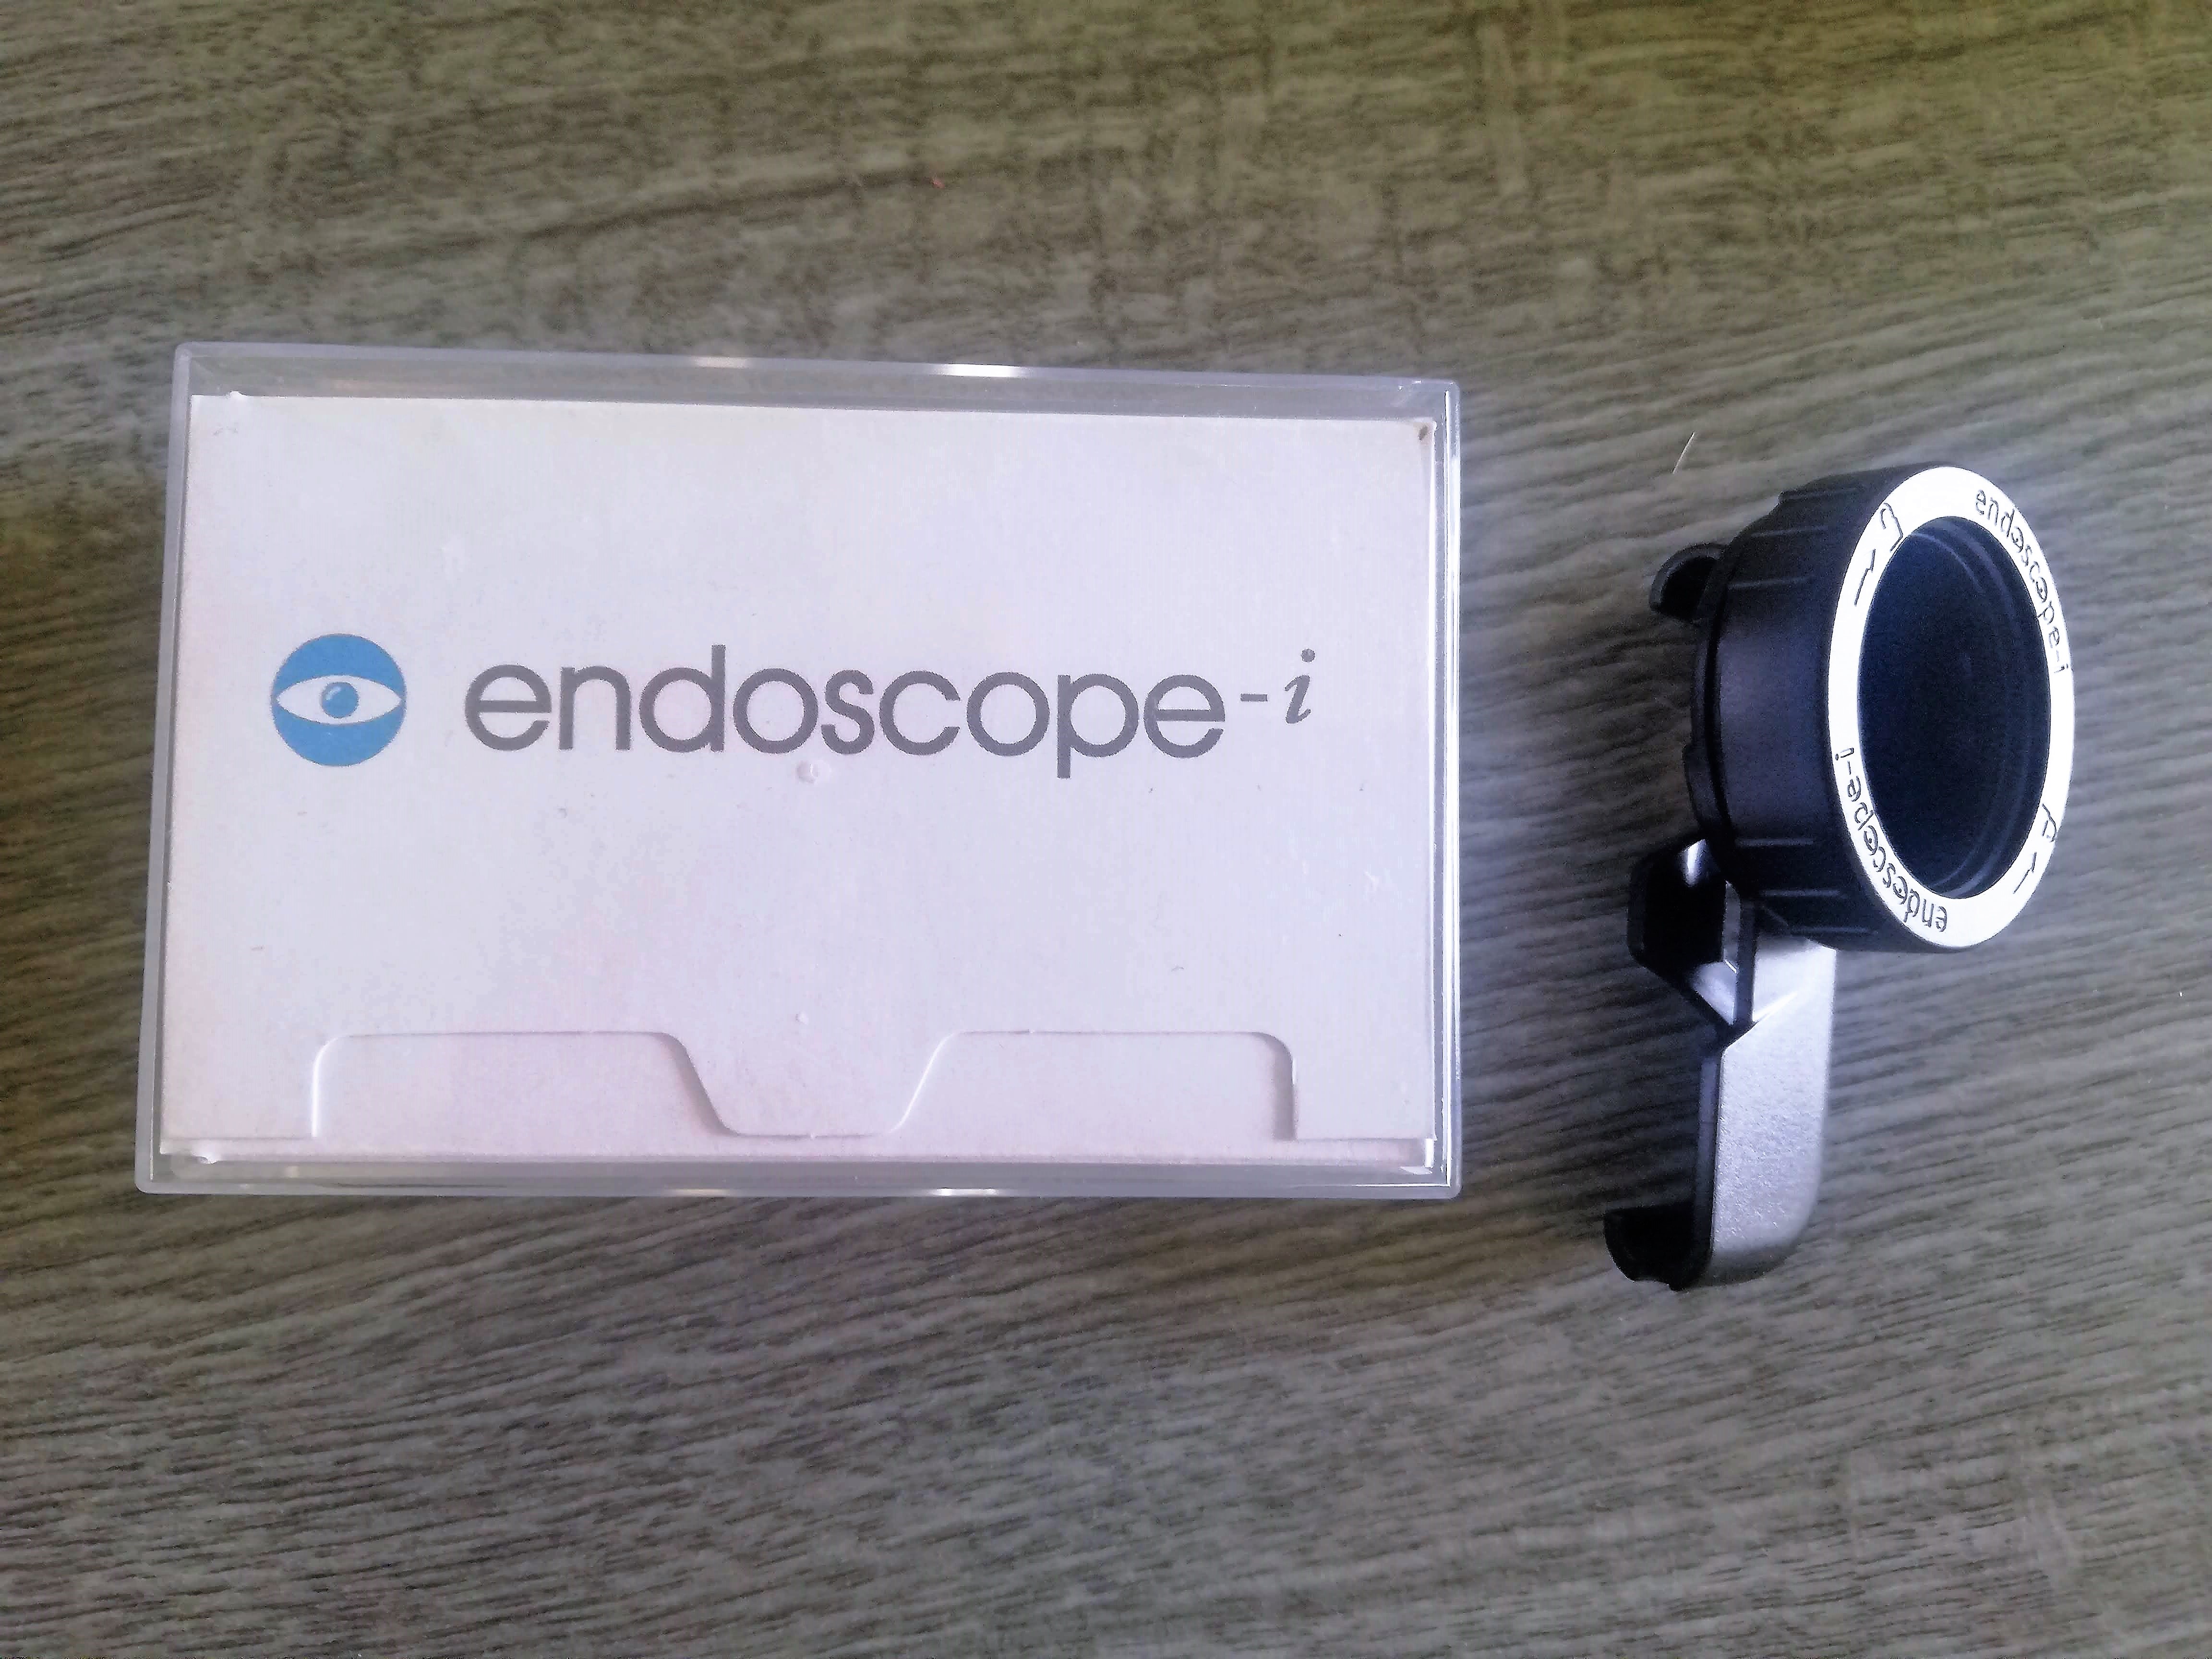 endoscope-i.jpg